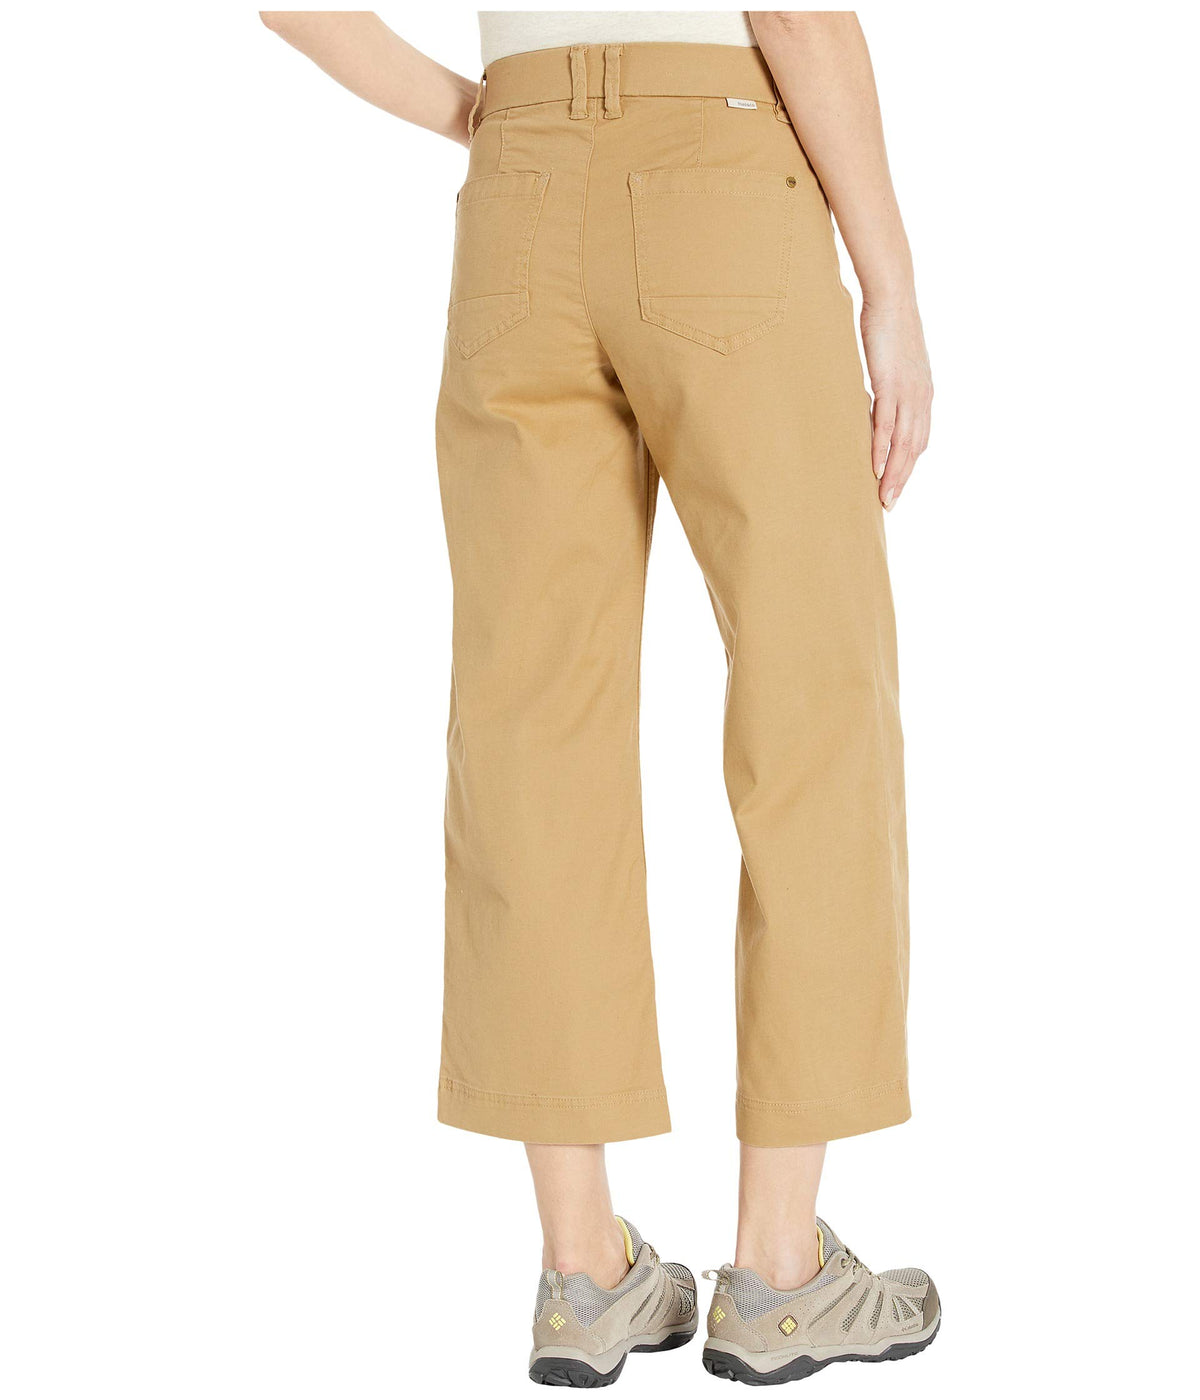 Earthworks Wide Leg Pants